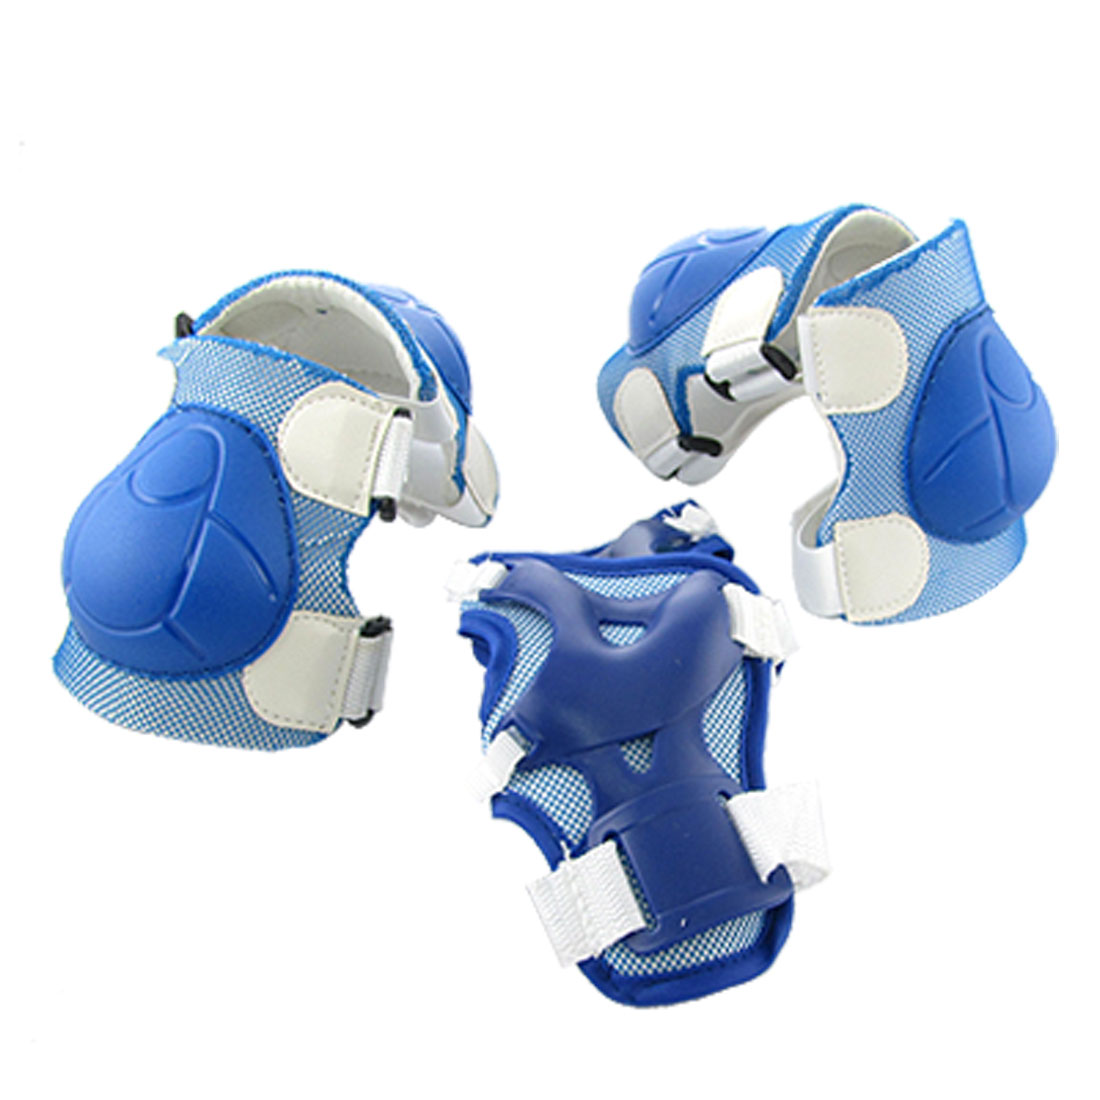 Children Sports Protective Knee Pads